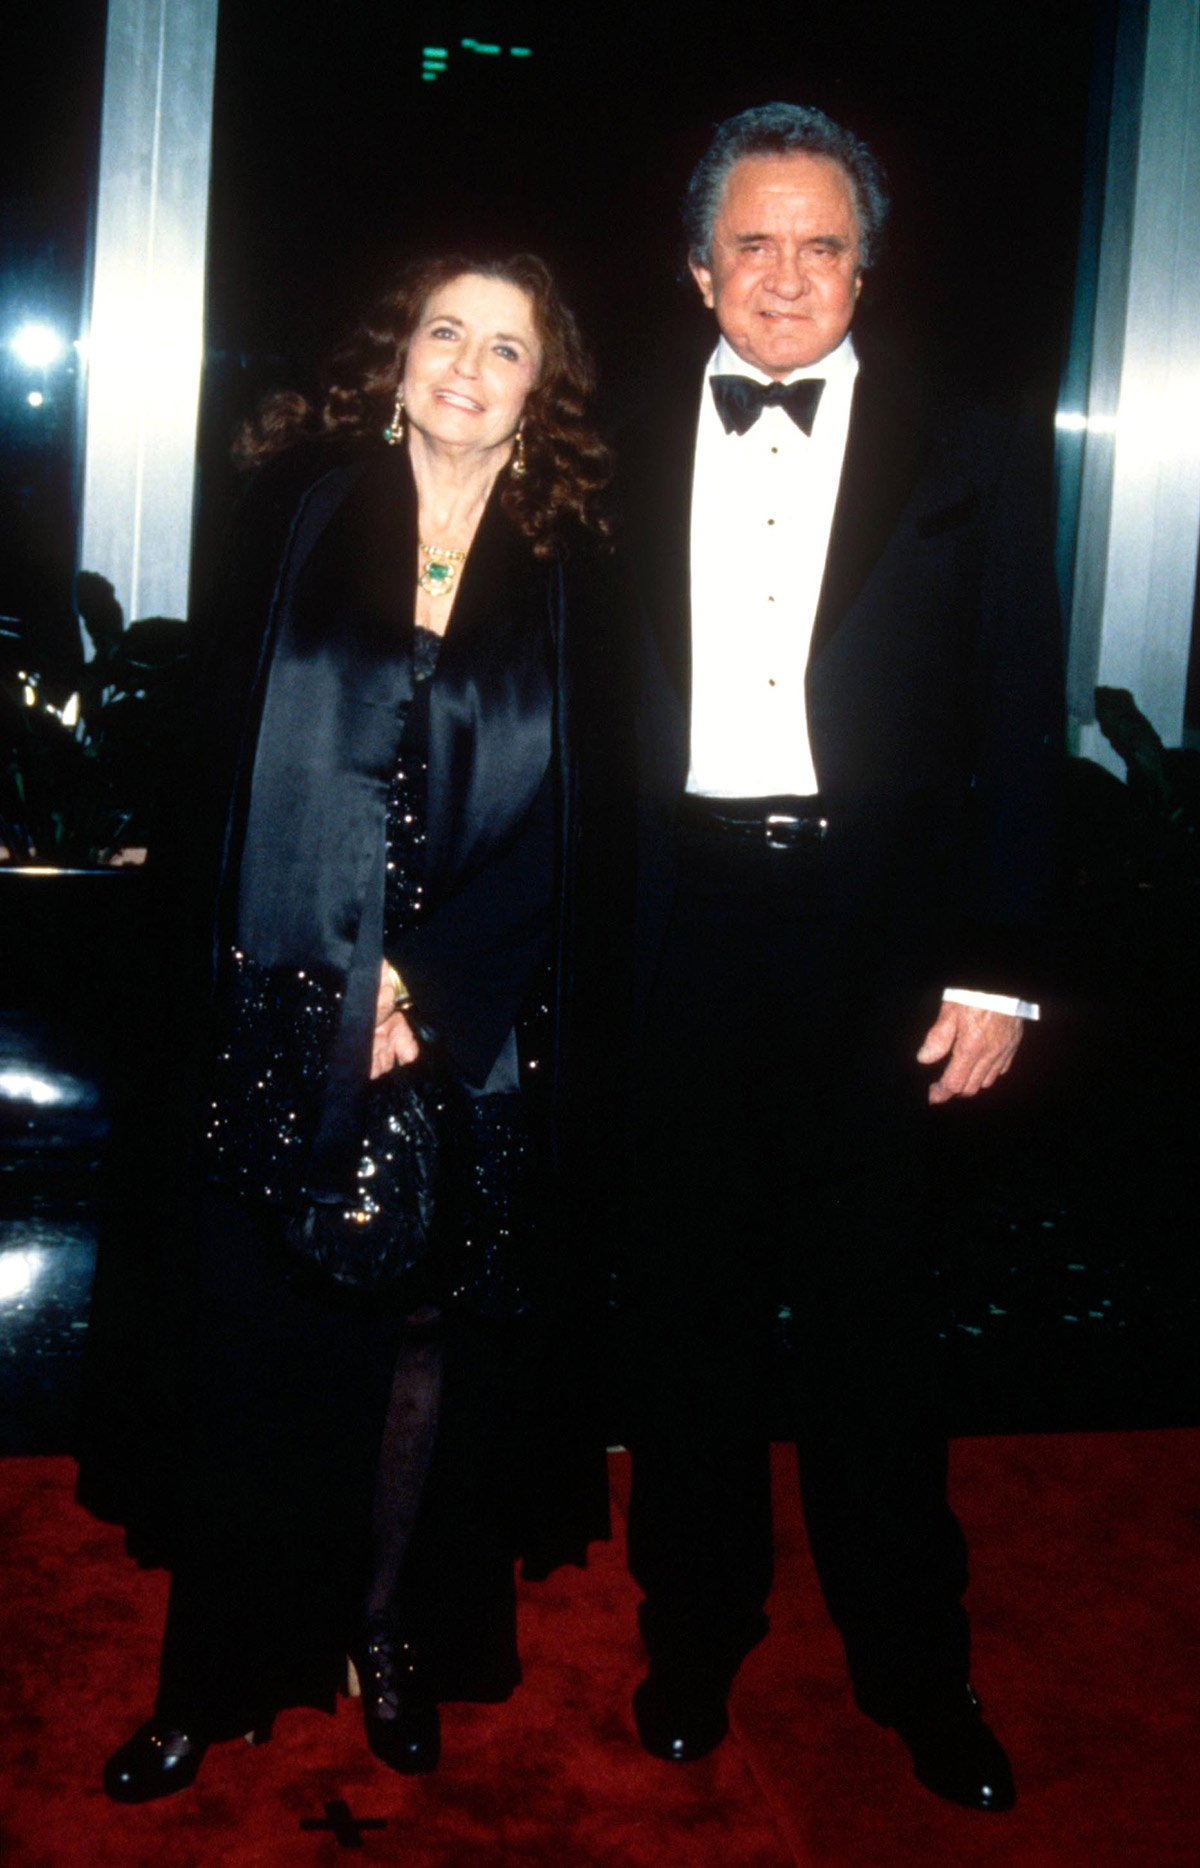 June Carter Cash attends with Johnny Cash as he receives the Kennedy Center Honors, one of the most recognized cultural awards in the United States